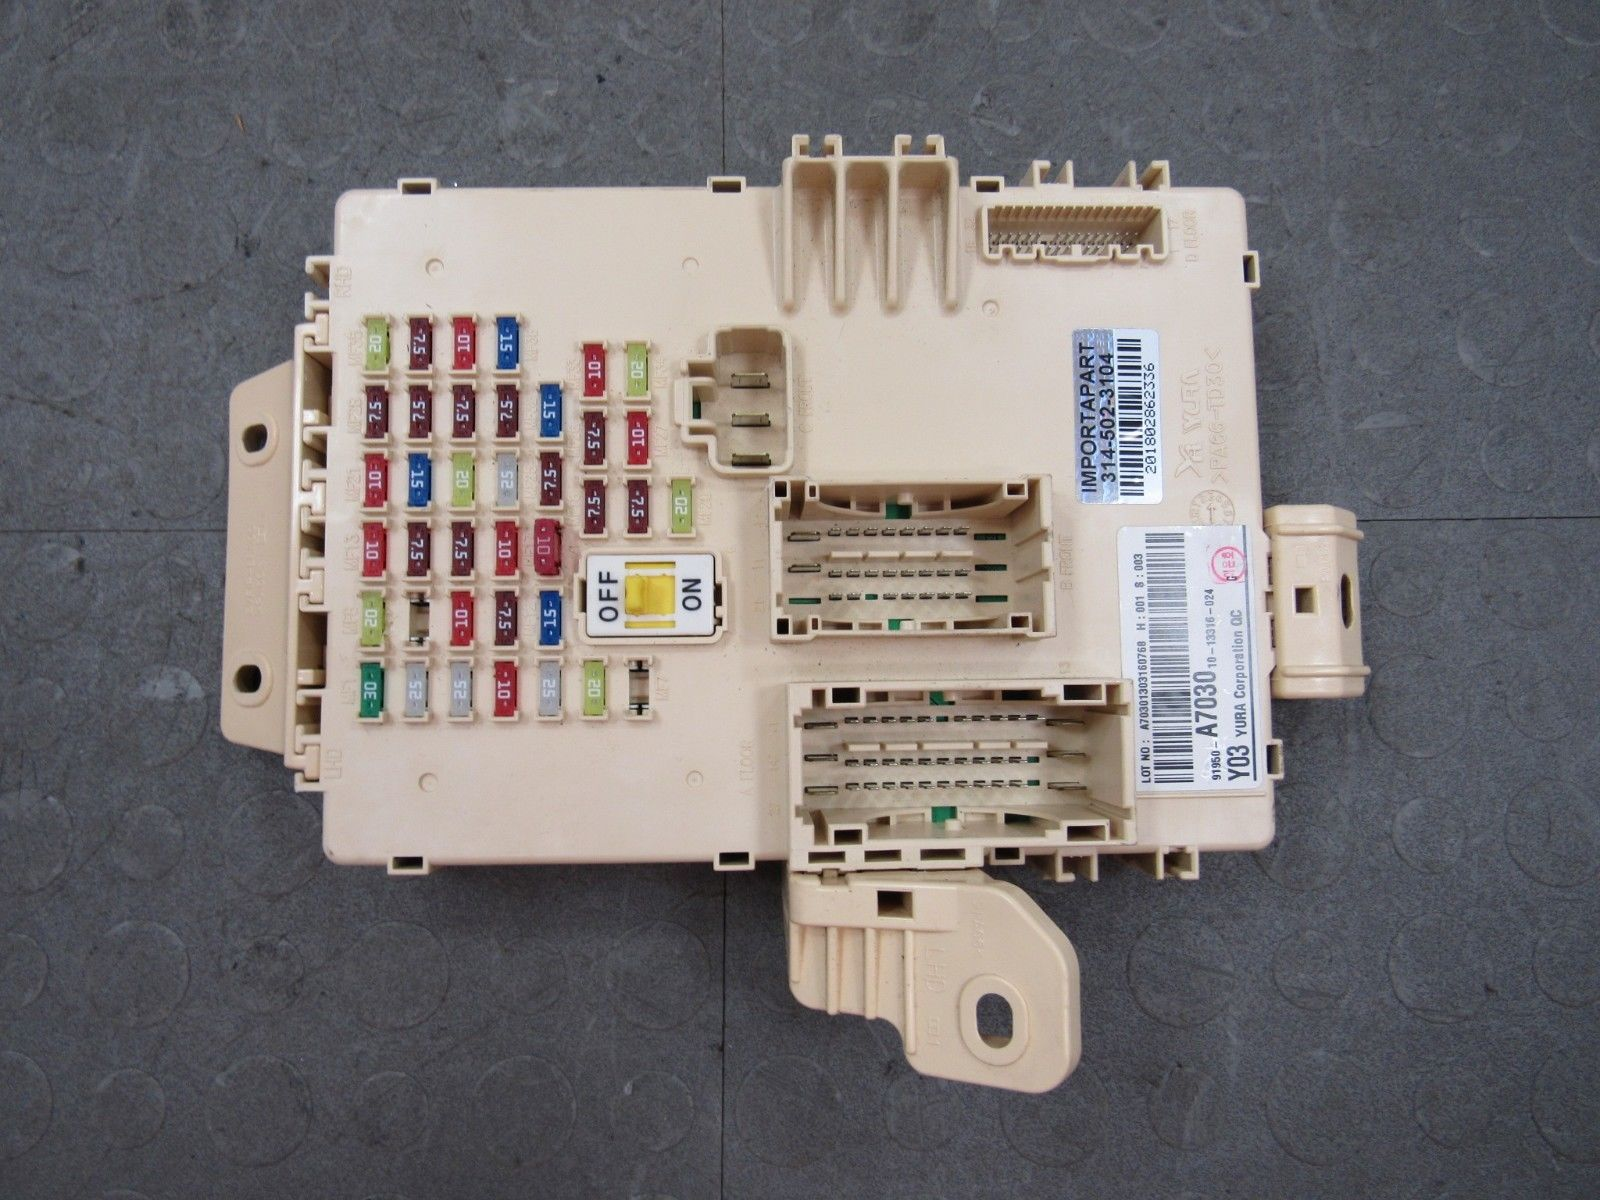 Kia Forte Koup Fuse Box Wiring Diagram Libraries Location Library14 16 Forte5 Interior Cabin